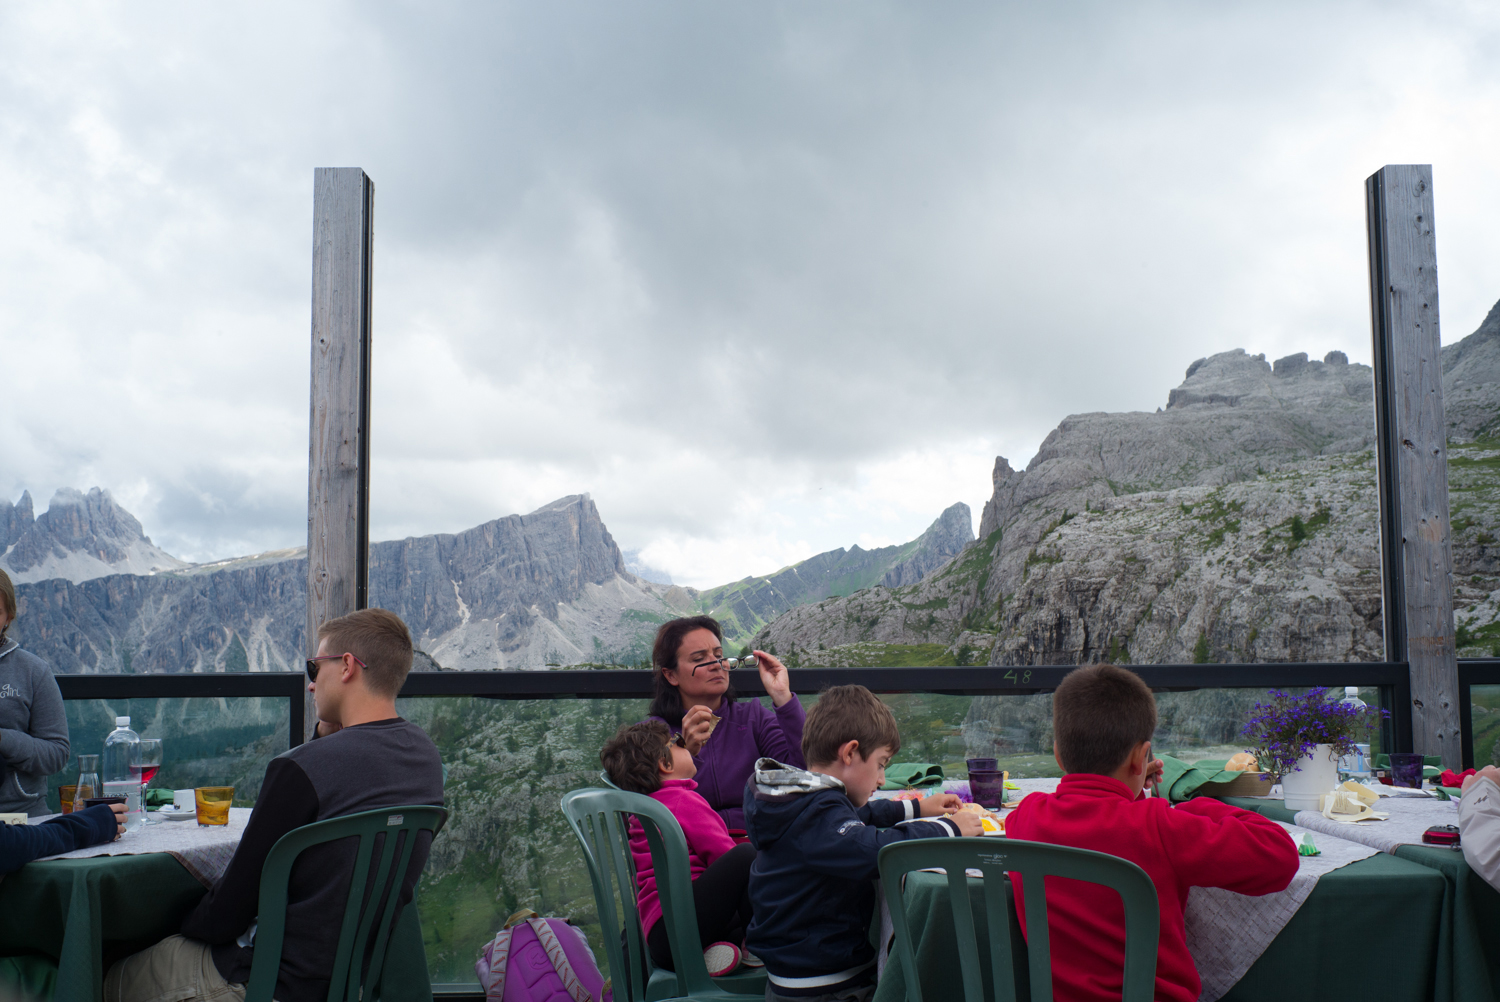 Lunch at Rifugio Scoiattoli